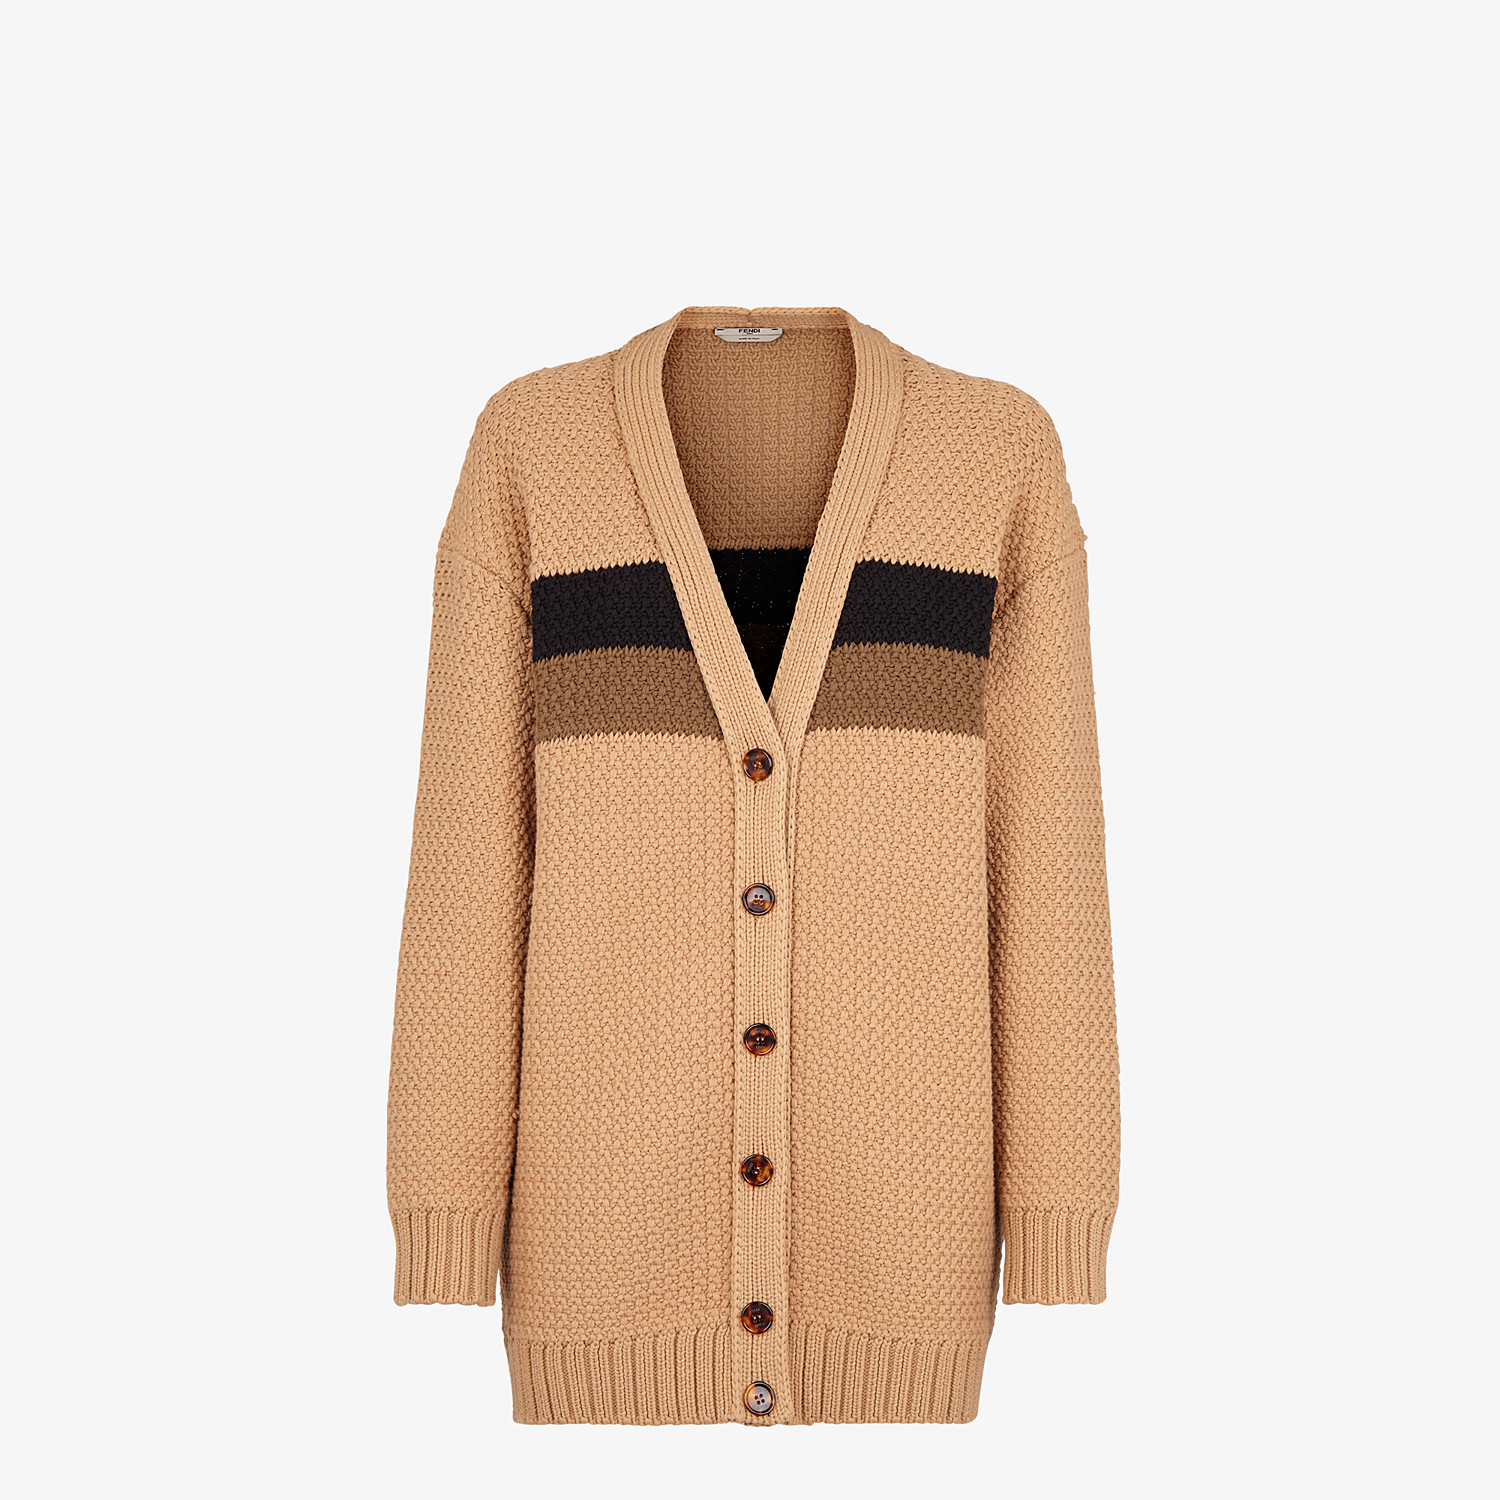 FENDI CARDIGAN - Beige cotton cardigan - view 1 detail